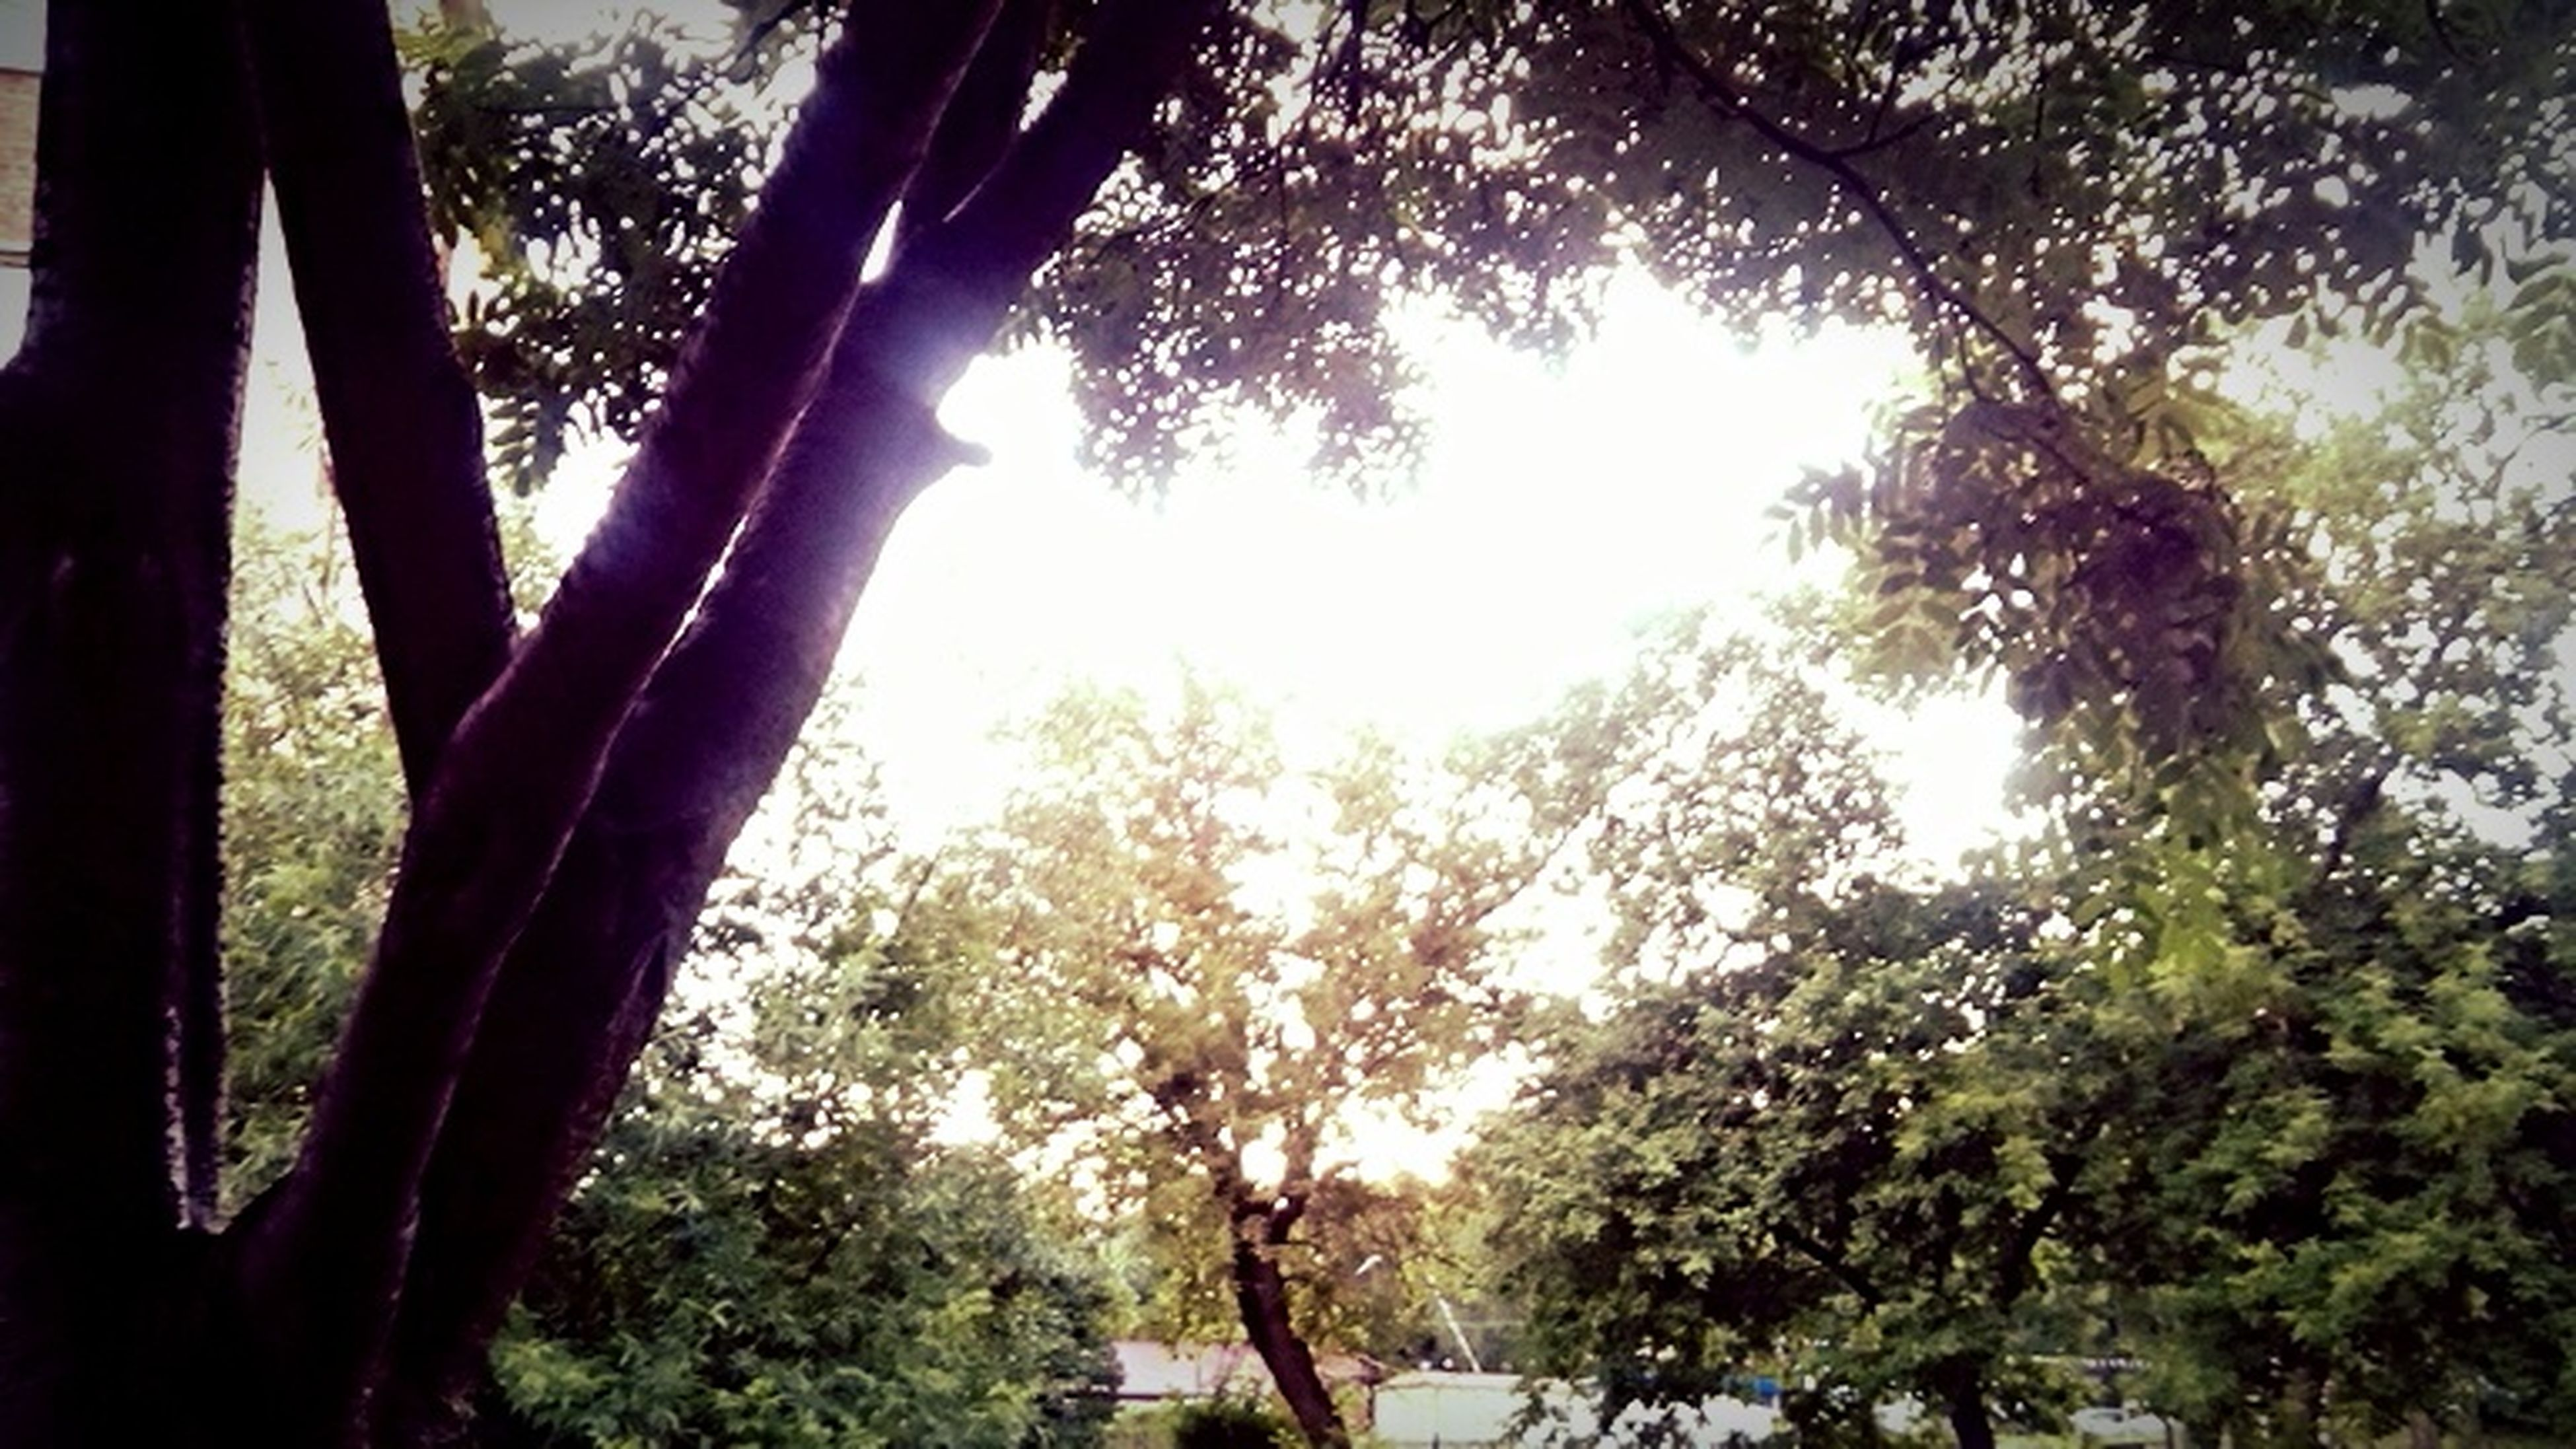 tree, sun, sunlight, sunbeam, lens flare, growth, branch, tree trunk, tranquility, nature, beauty in nature, sunny, low angle view, tranquil scene, back lit, scenics, sky, shadow, silhouette, day